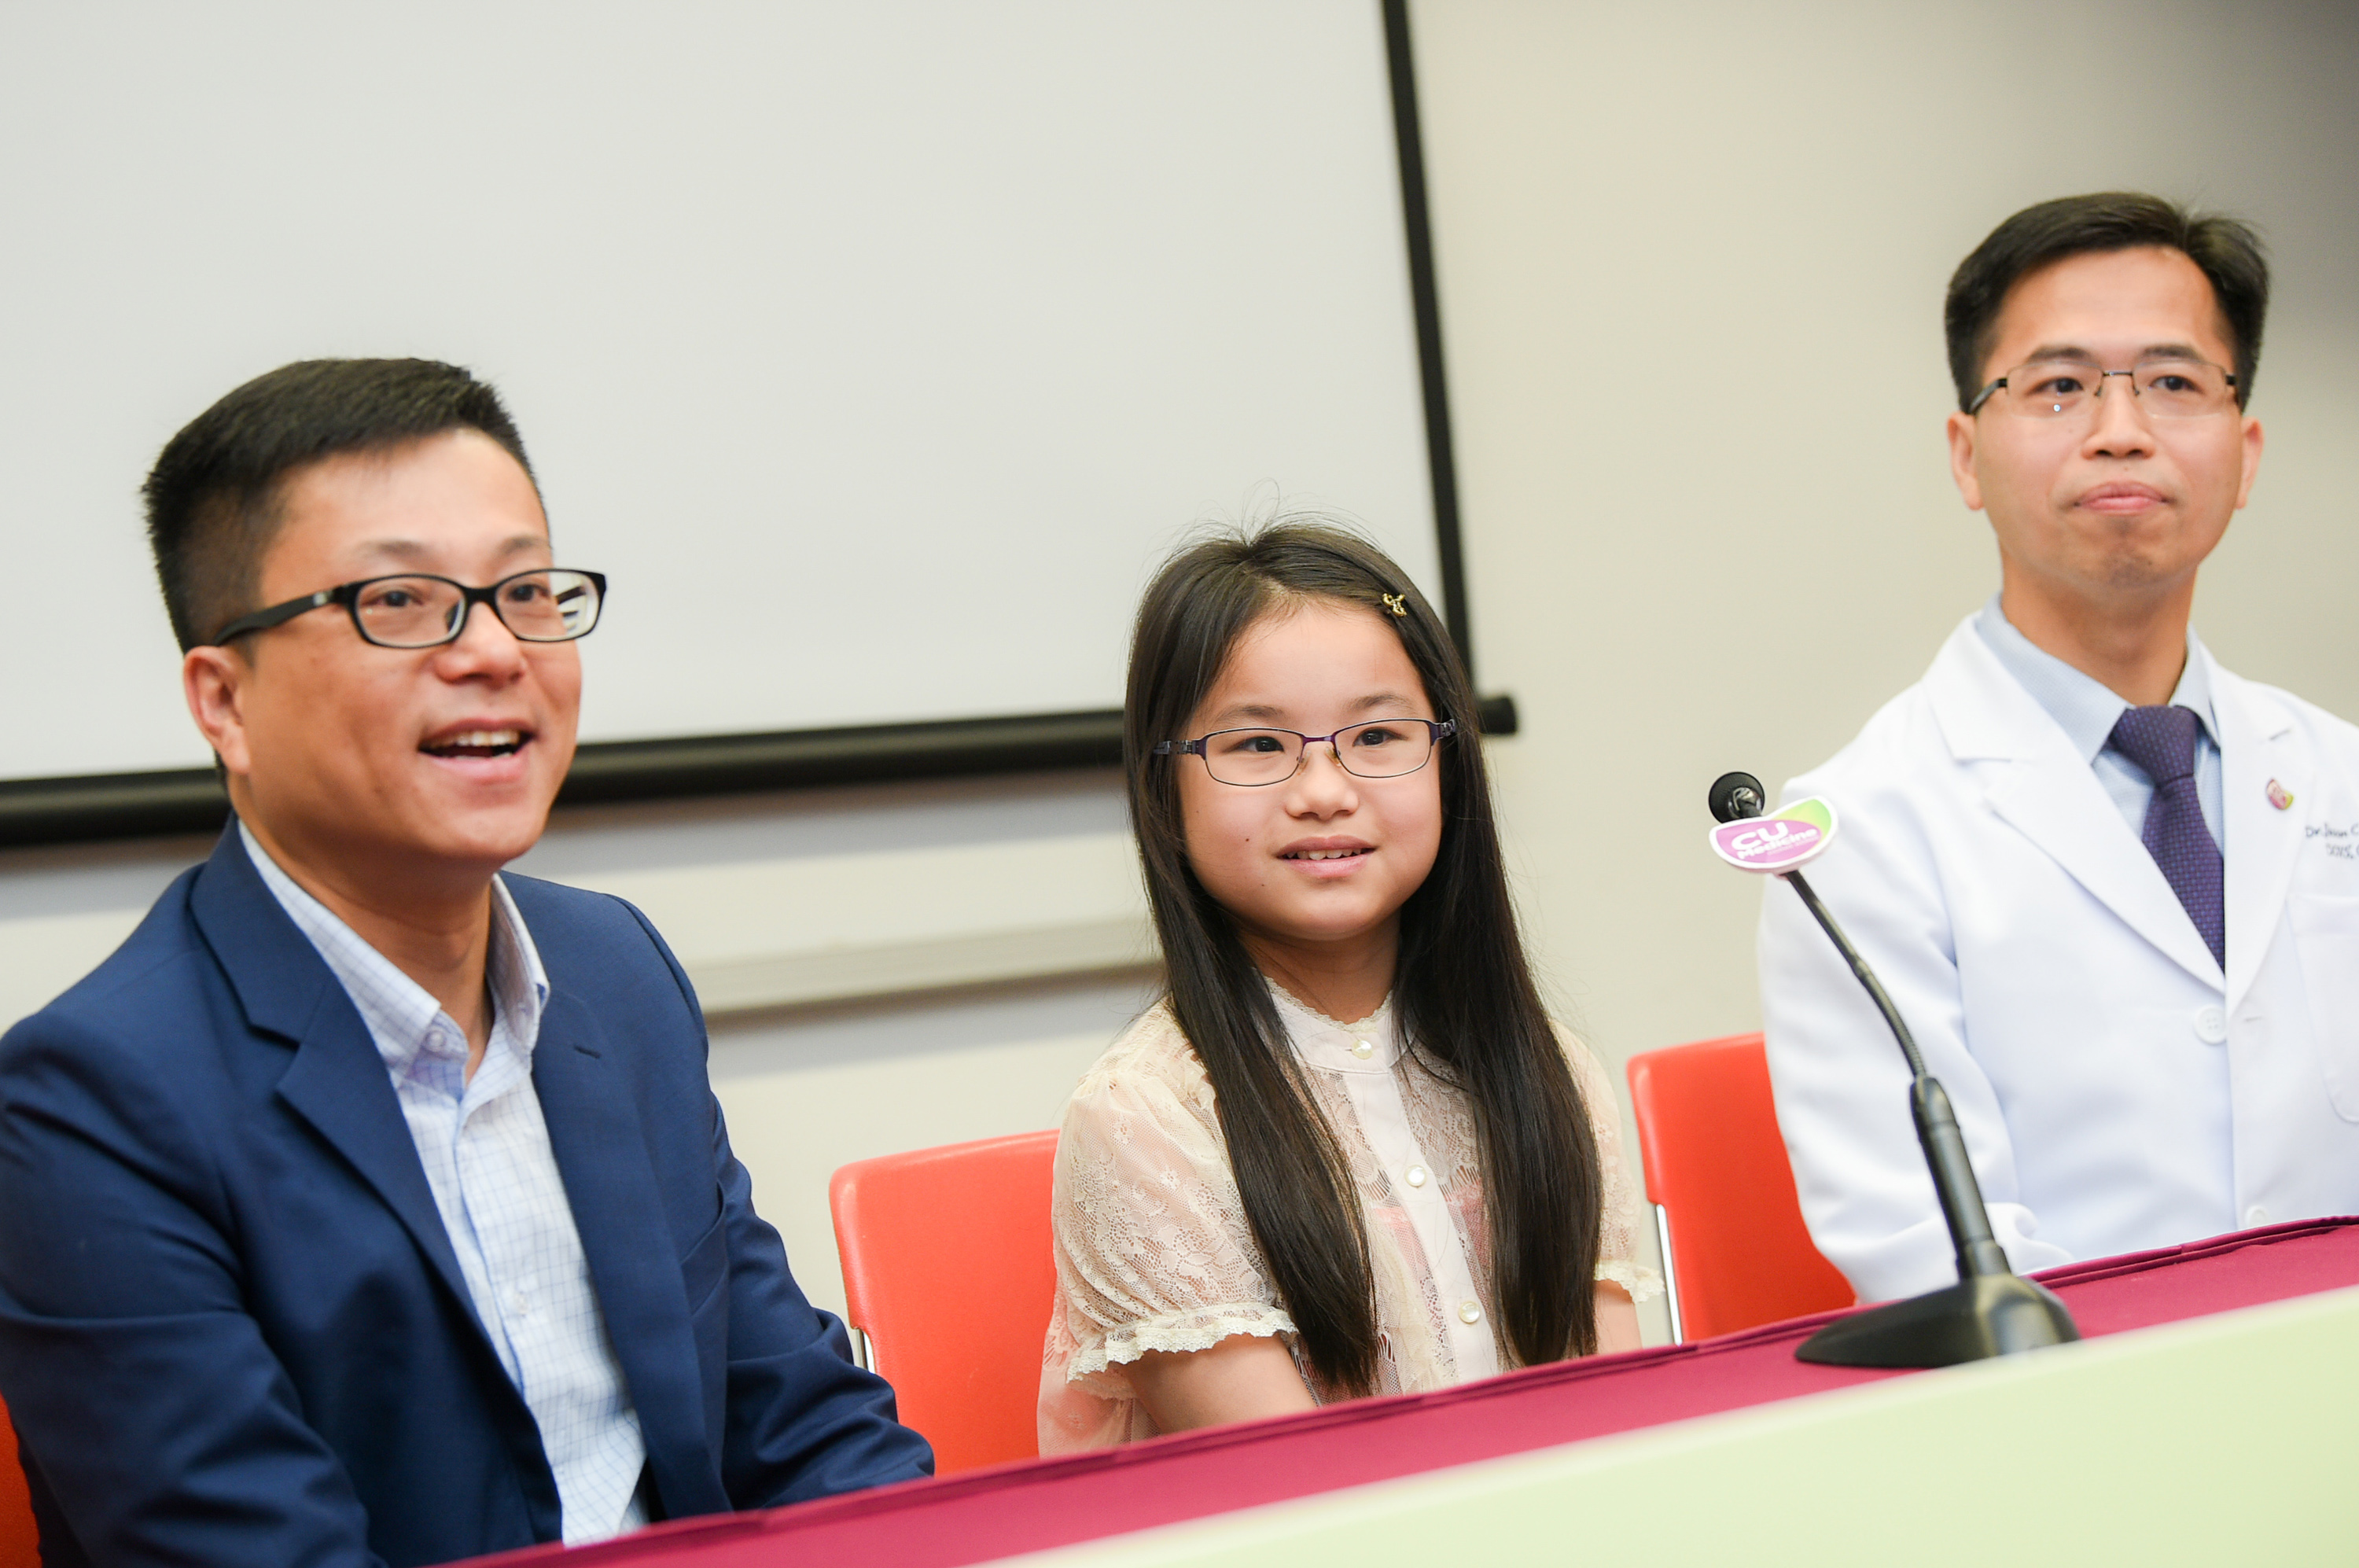 A CUHK study revealed that children of two parents with high myopia have 12 times the risk of developing myopia. LAMP study principal investigator Dr. Jason YAM (right) hopes the second phase of study can help prevent these children from myopia.